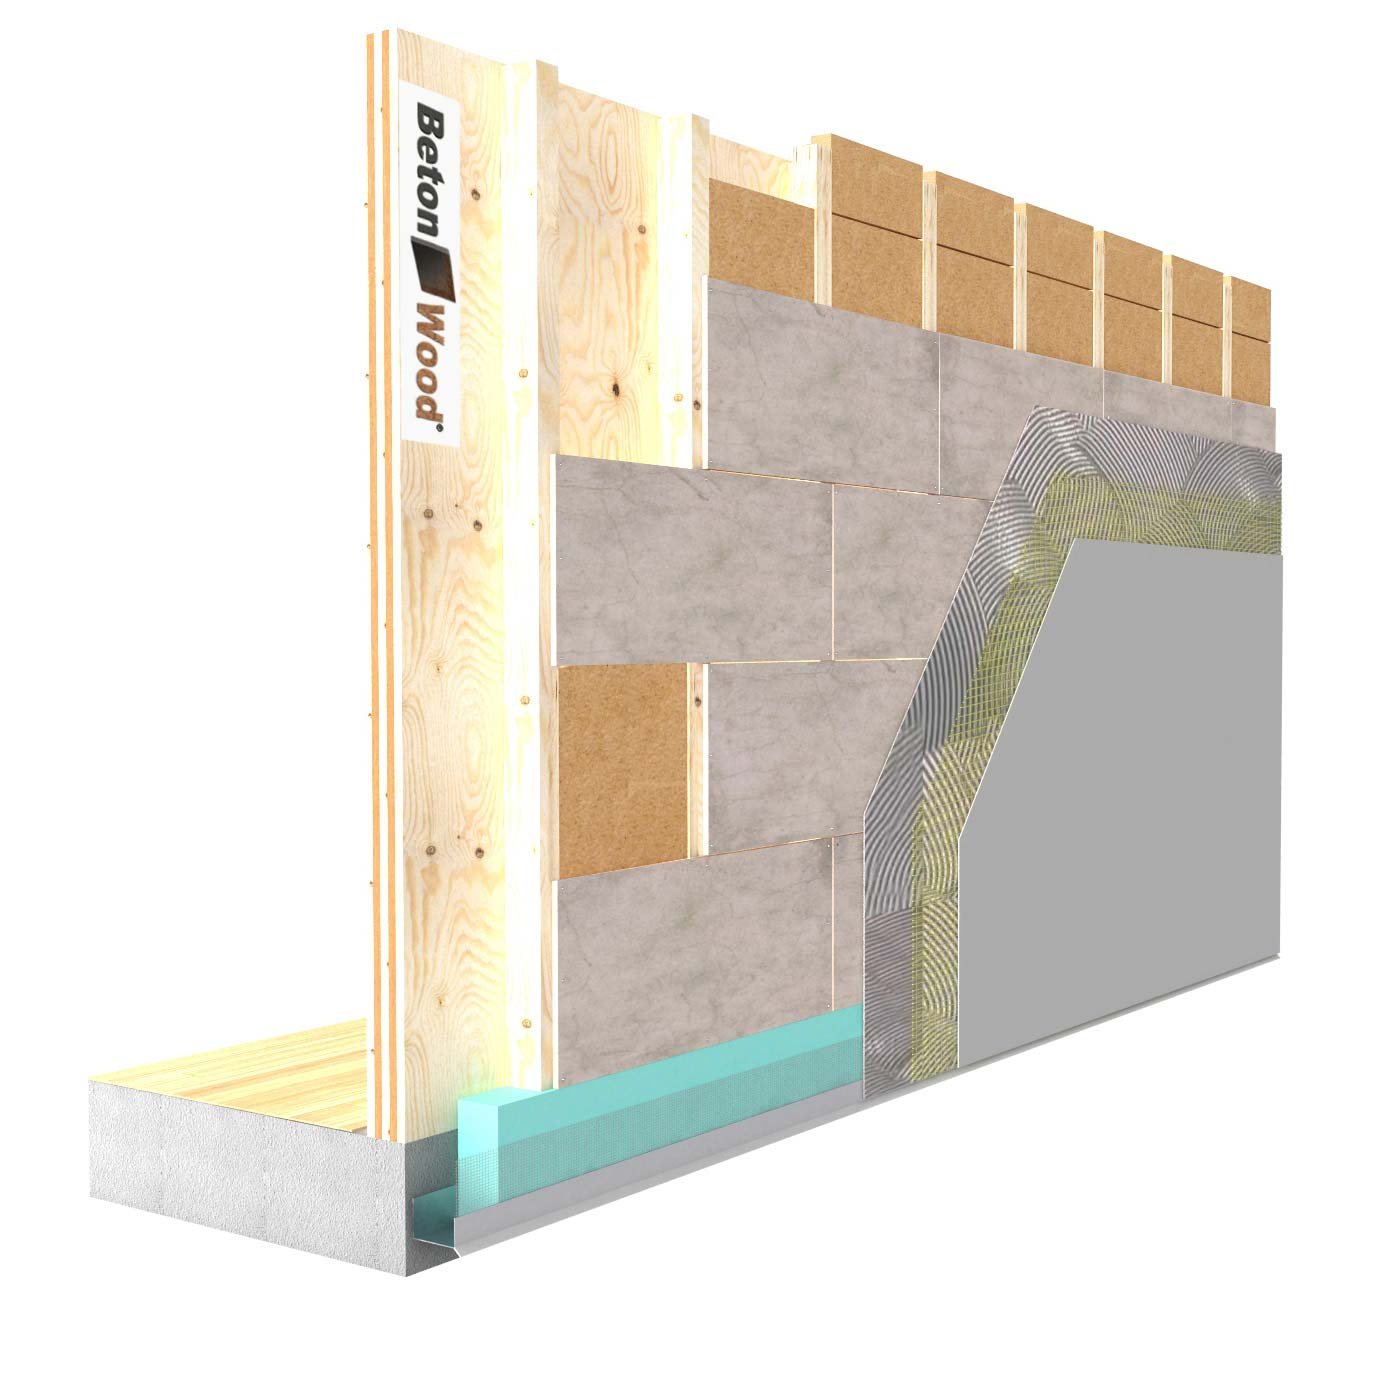 External insulation system with Therm dry fiber wood on wooden walls